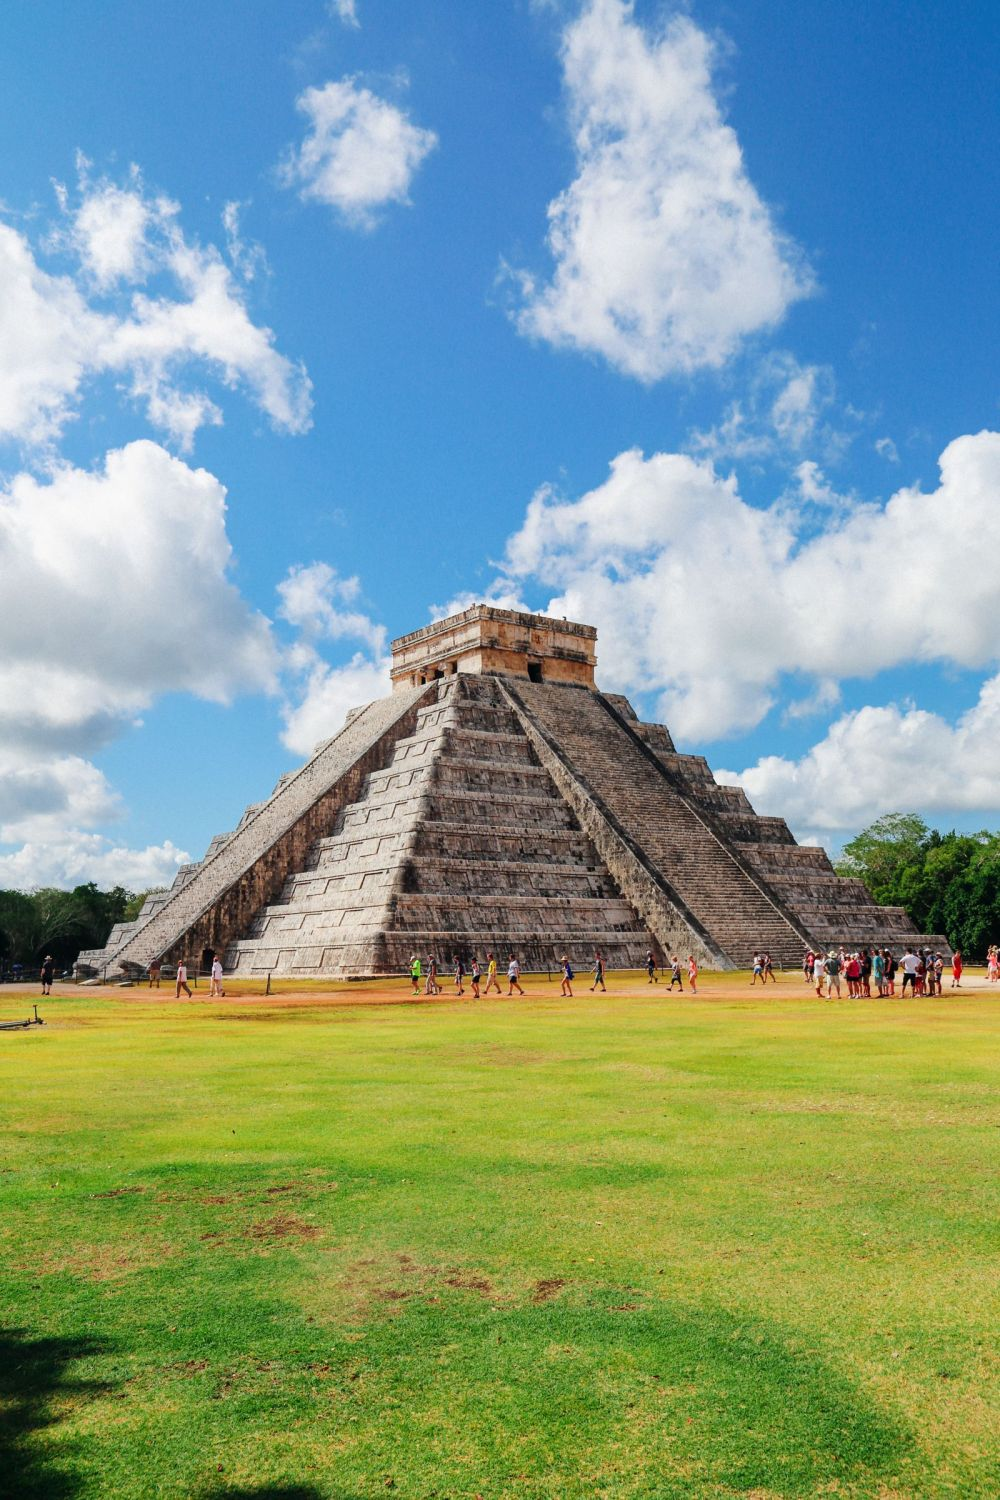 9 Things To Do When You Visit Cancun In Mexico That Don't Involve Partying (8)